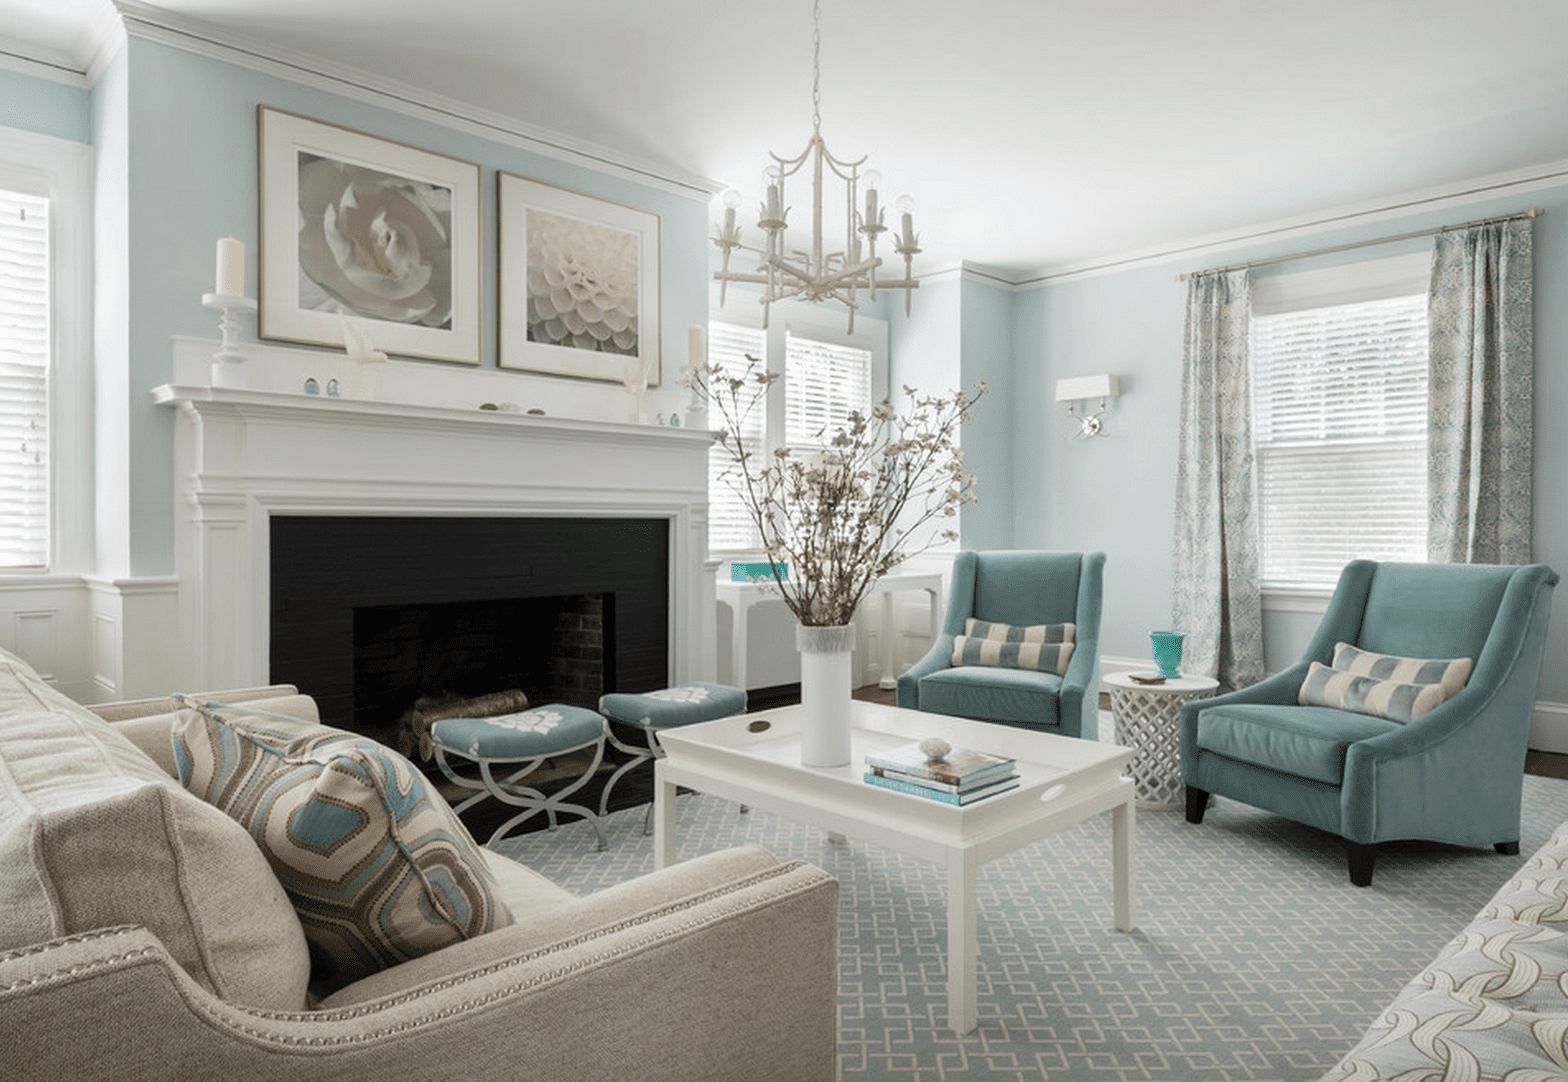 10 Most Recommended Blue Living Room Decorating Ideas blue living room ideas 2020